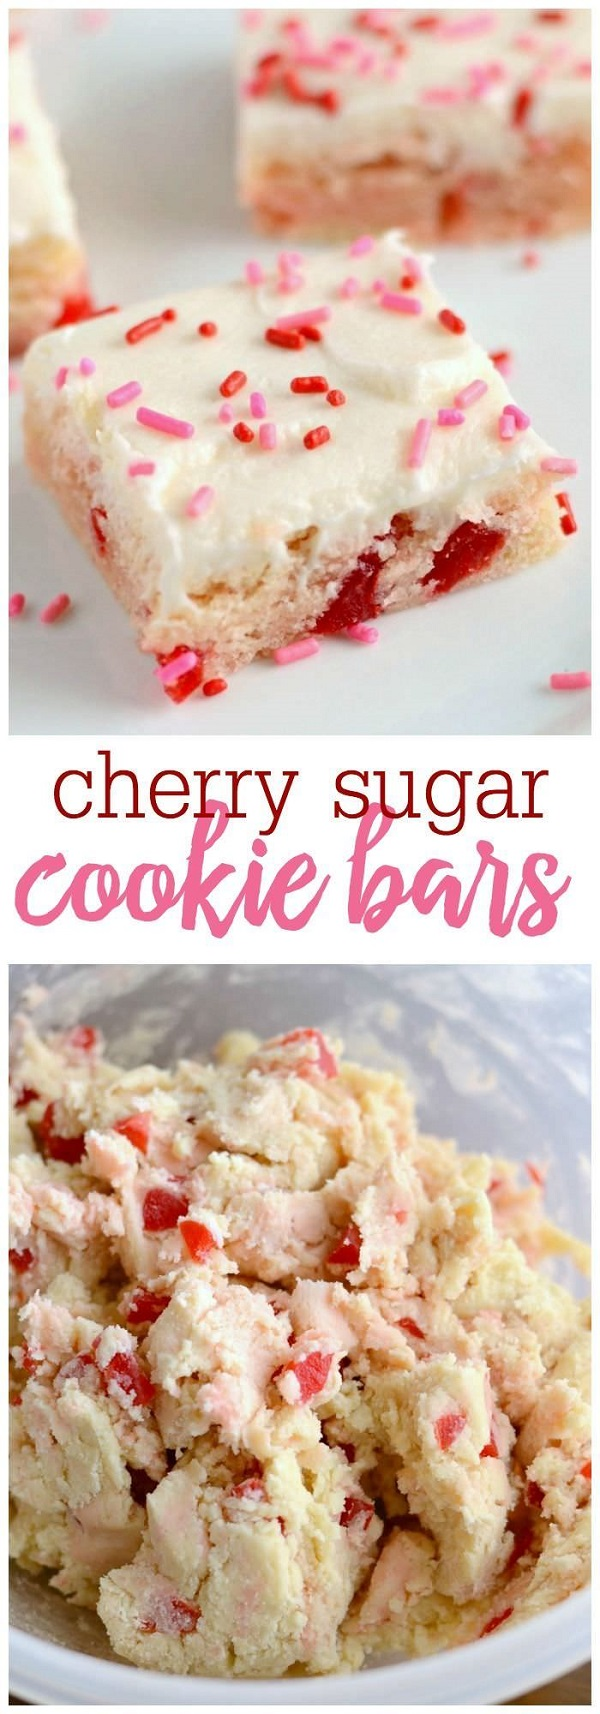 These Cherry Sugar Cookie Bars are a new favorite. They are similar to my sugar cookie bars, but with a cherry twist.